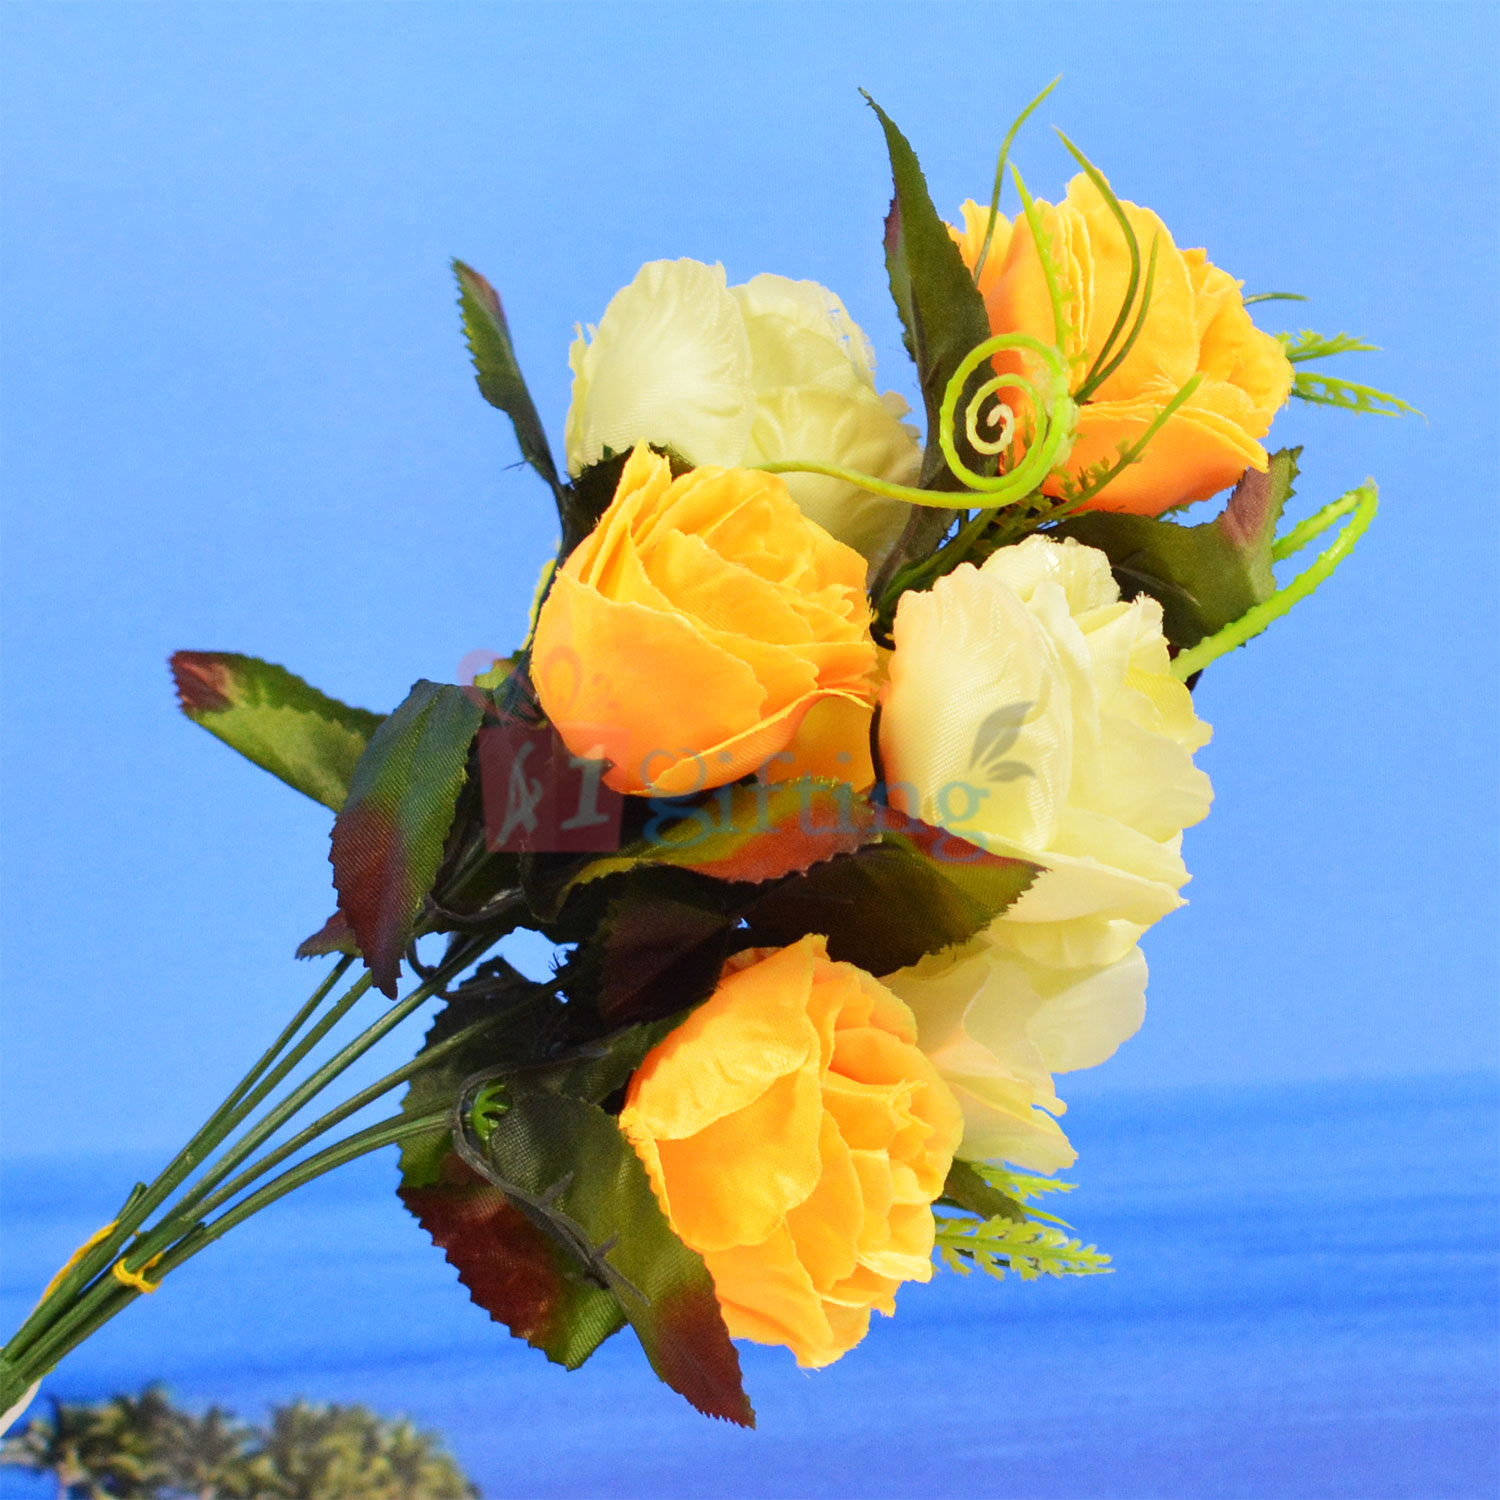 White and Yellow Rose Flower Bouquet Decorative Plant